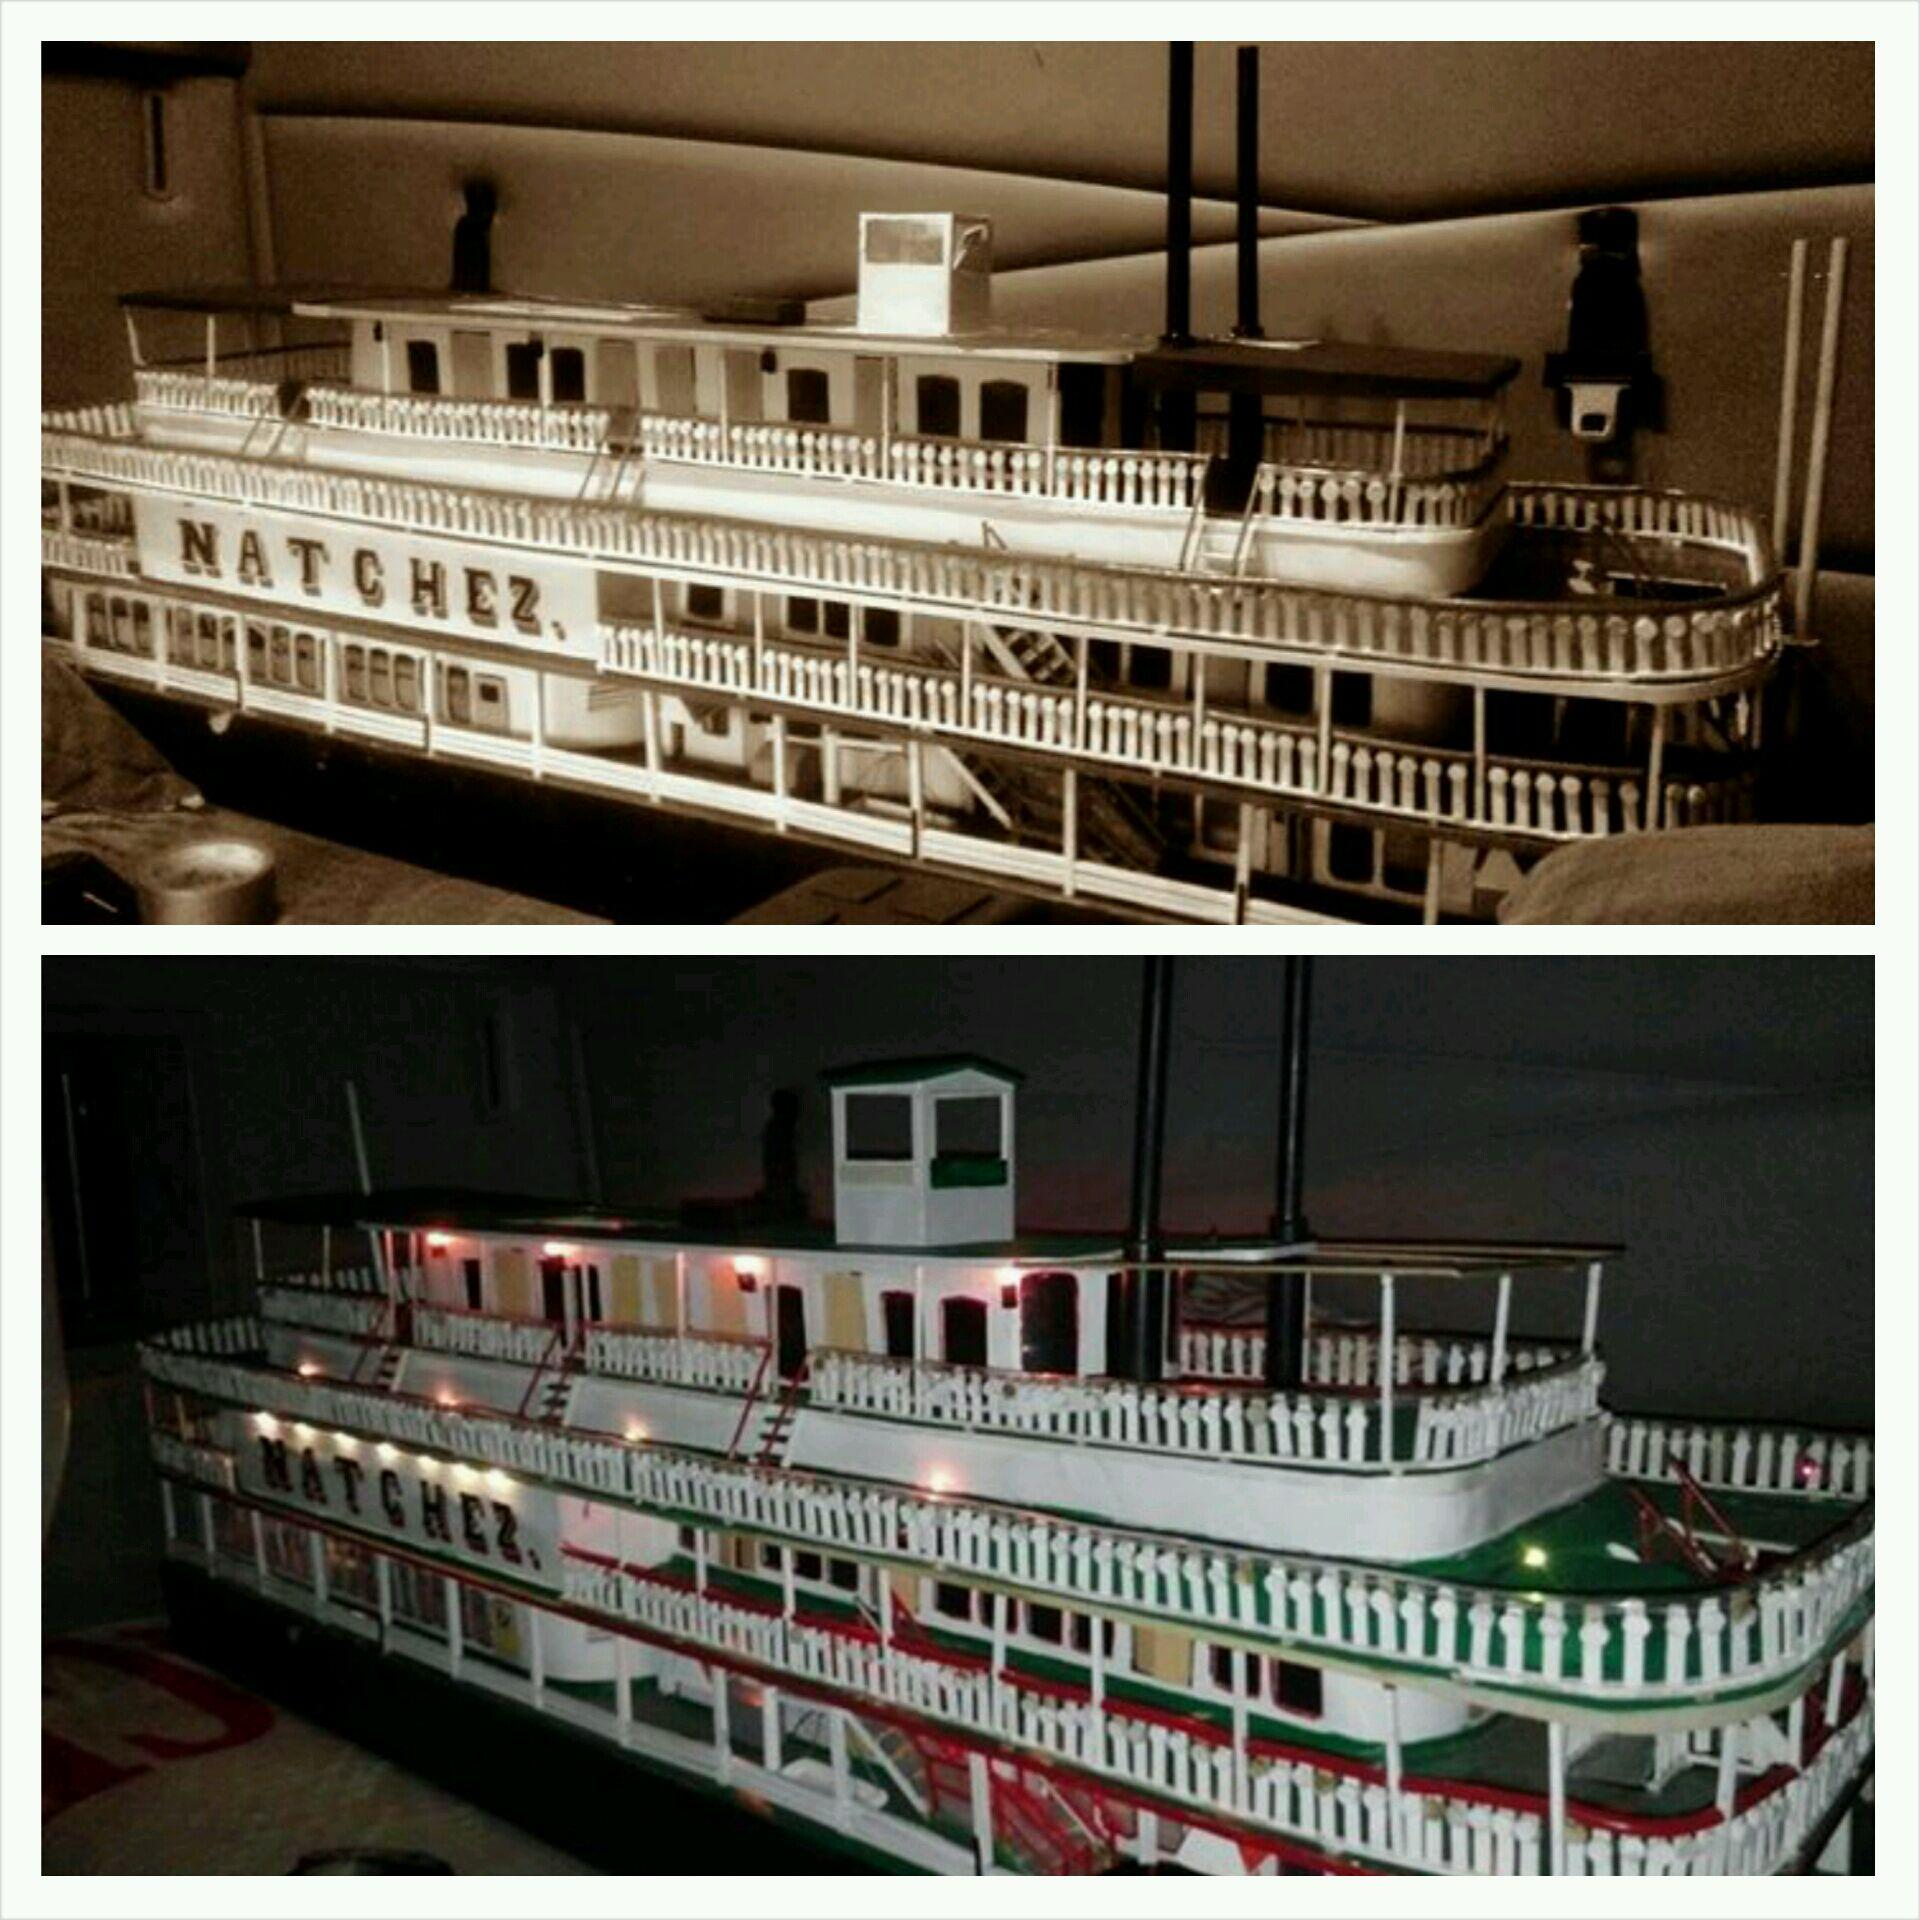 Brian-Metthews-carved-wooden-Steamer-Natchez. 43 lights and 6.5 ft long